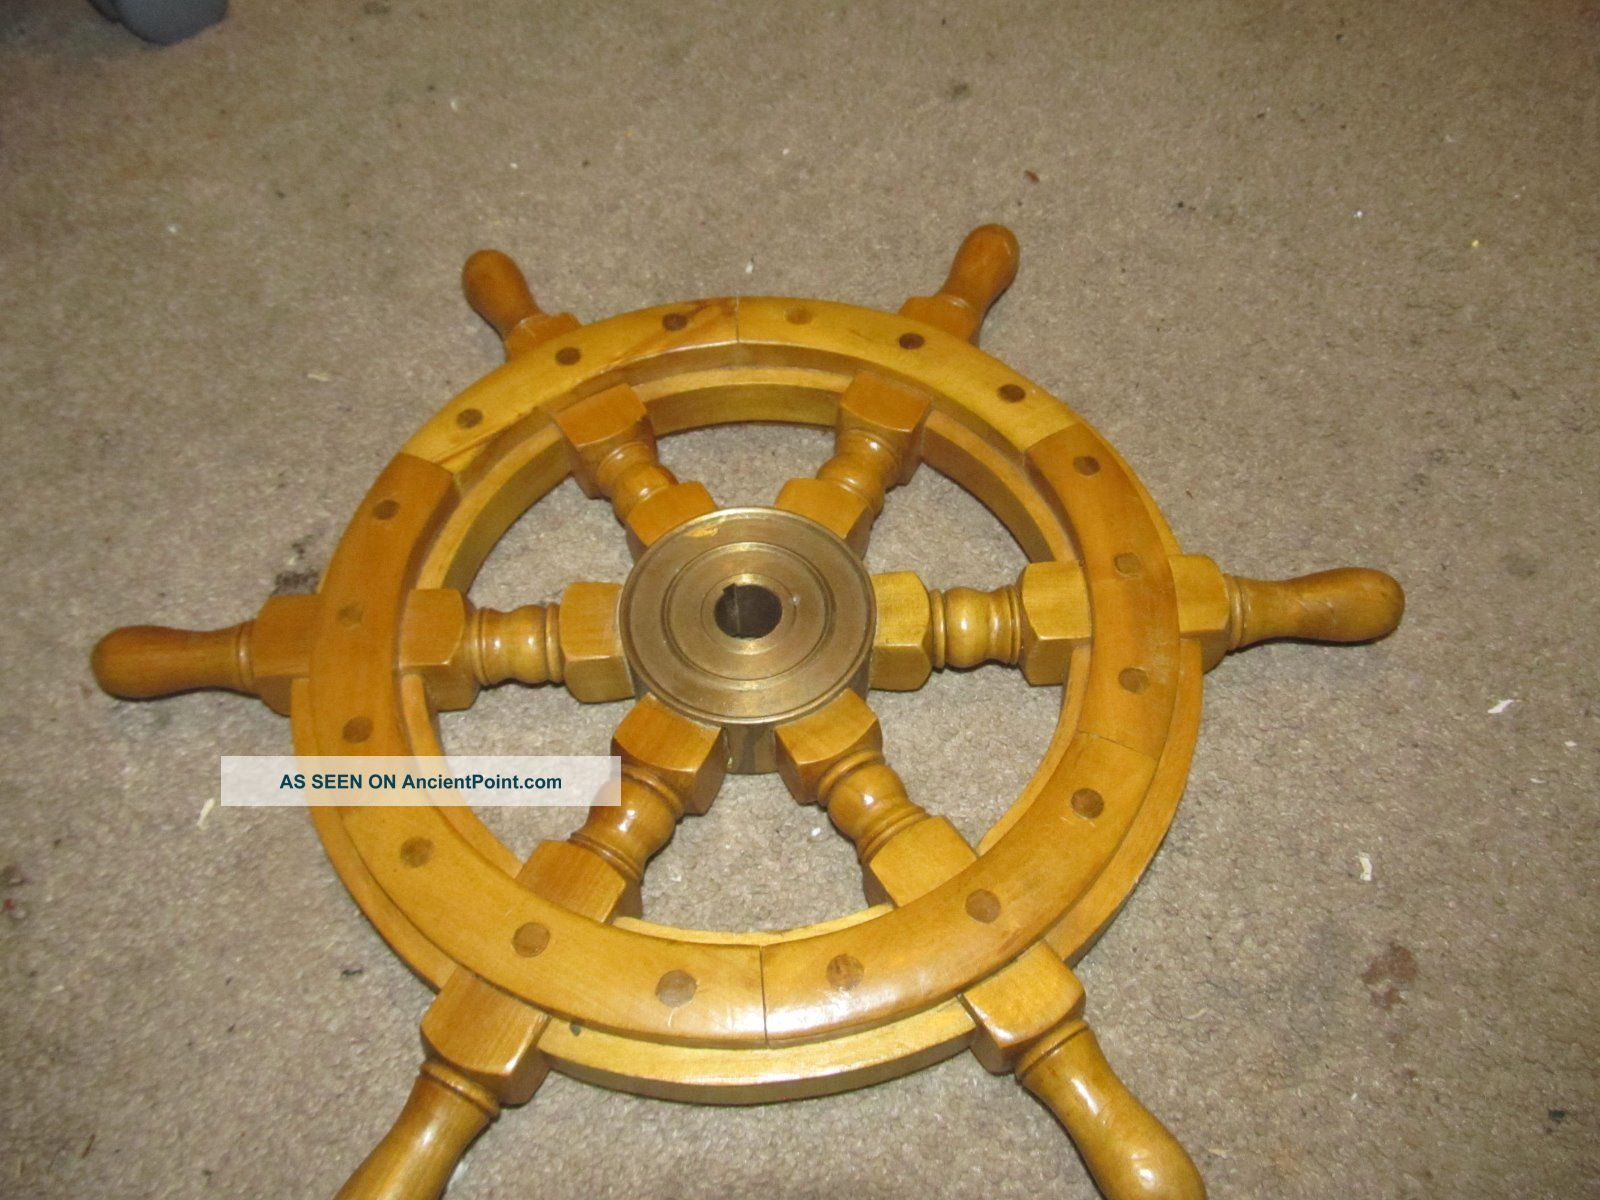 Old Vintage Real Ships Boat Yacht Steering Wheel 16 Inch Brass & Wood Wheels photo